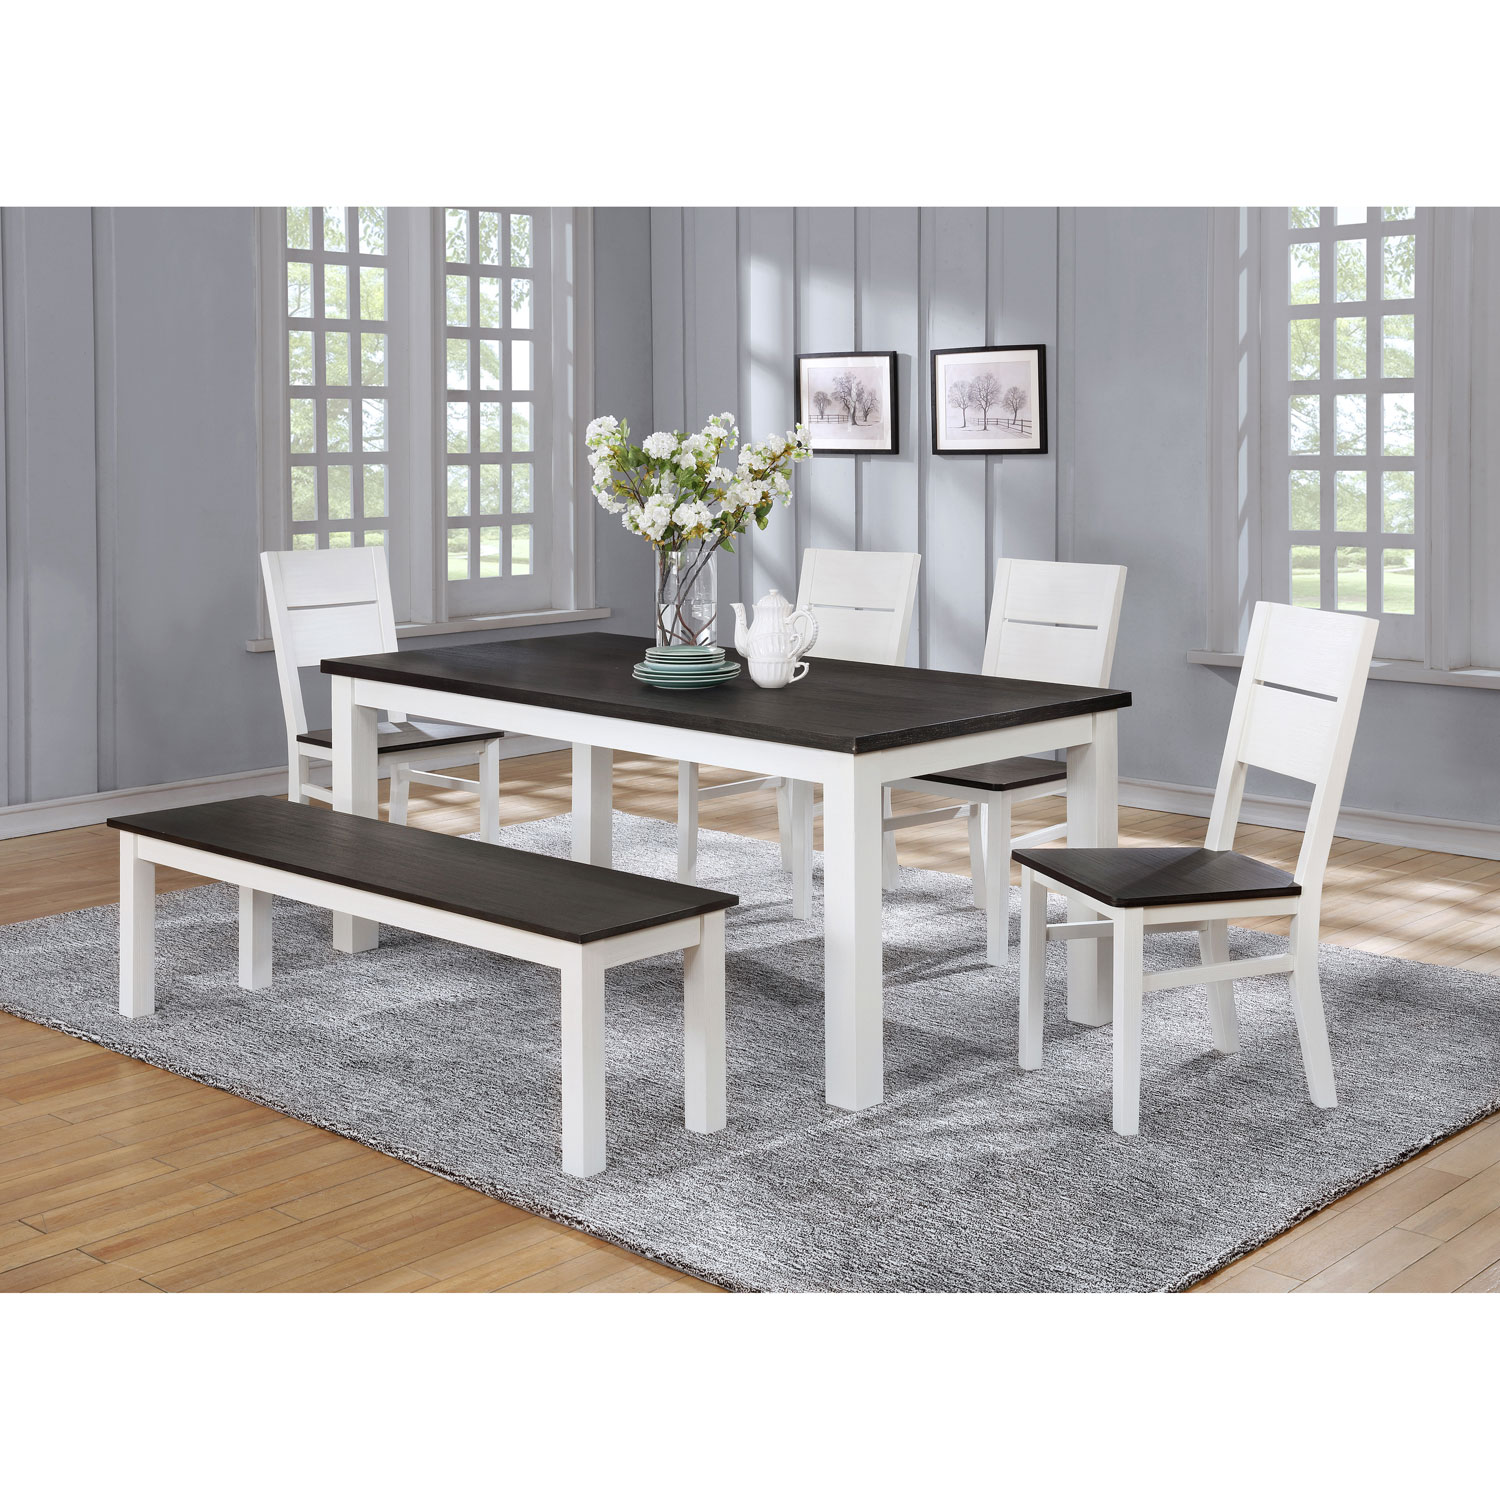 Lauren traditional 6 seating rectangular casual dining table white online only